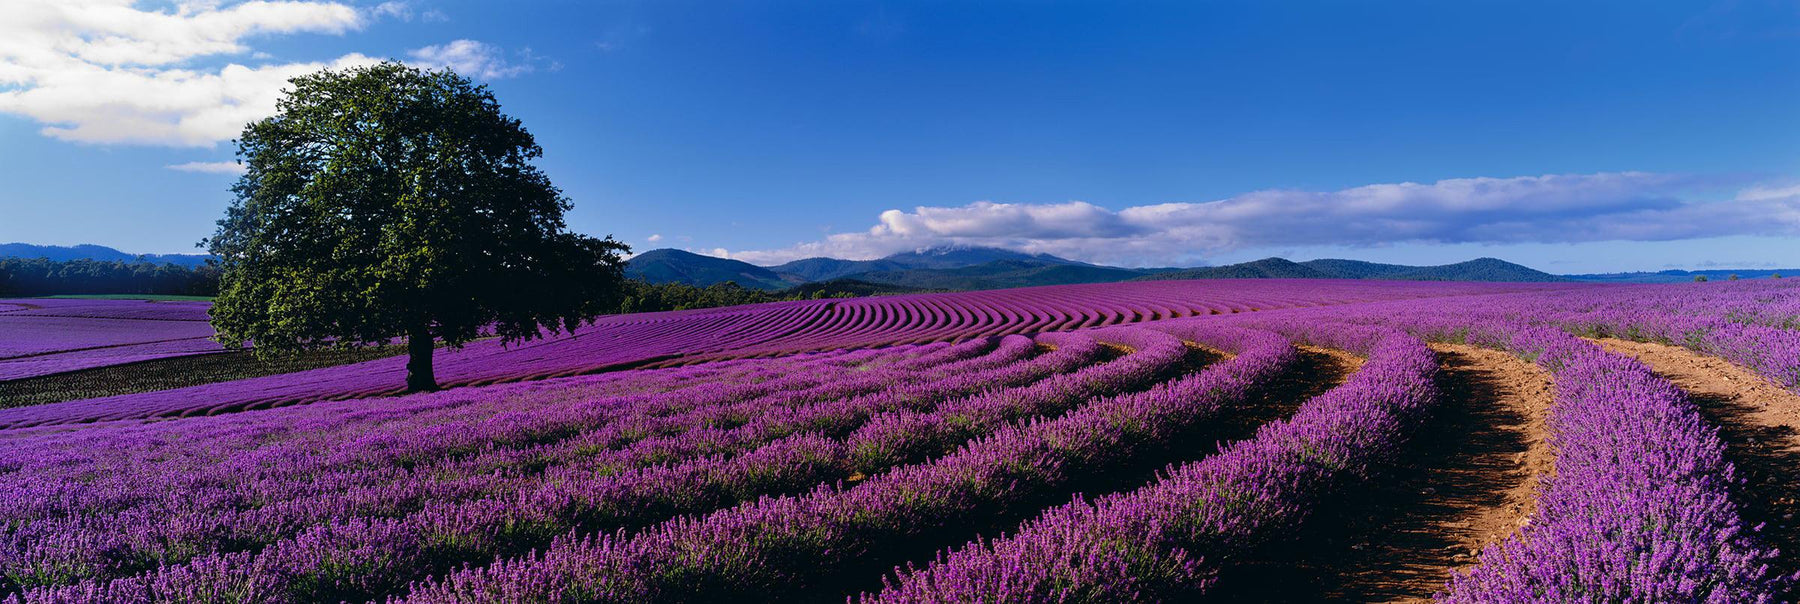 Large tree standing in the middle of rows of lavender bushes in Tasmania Australia